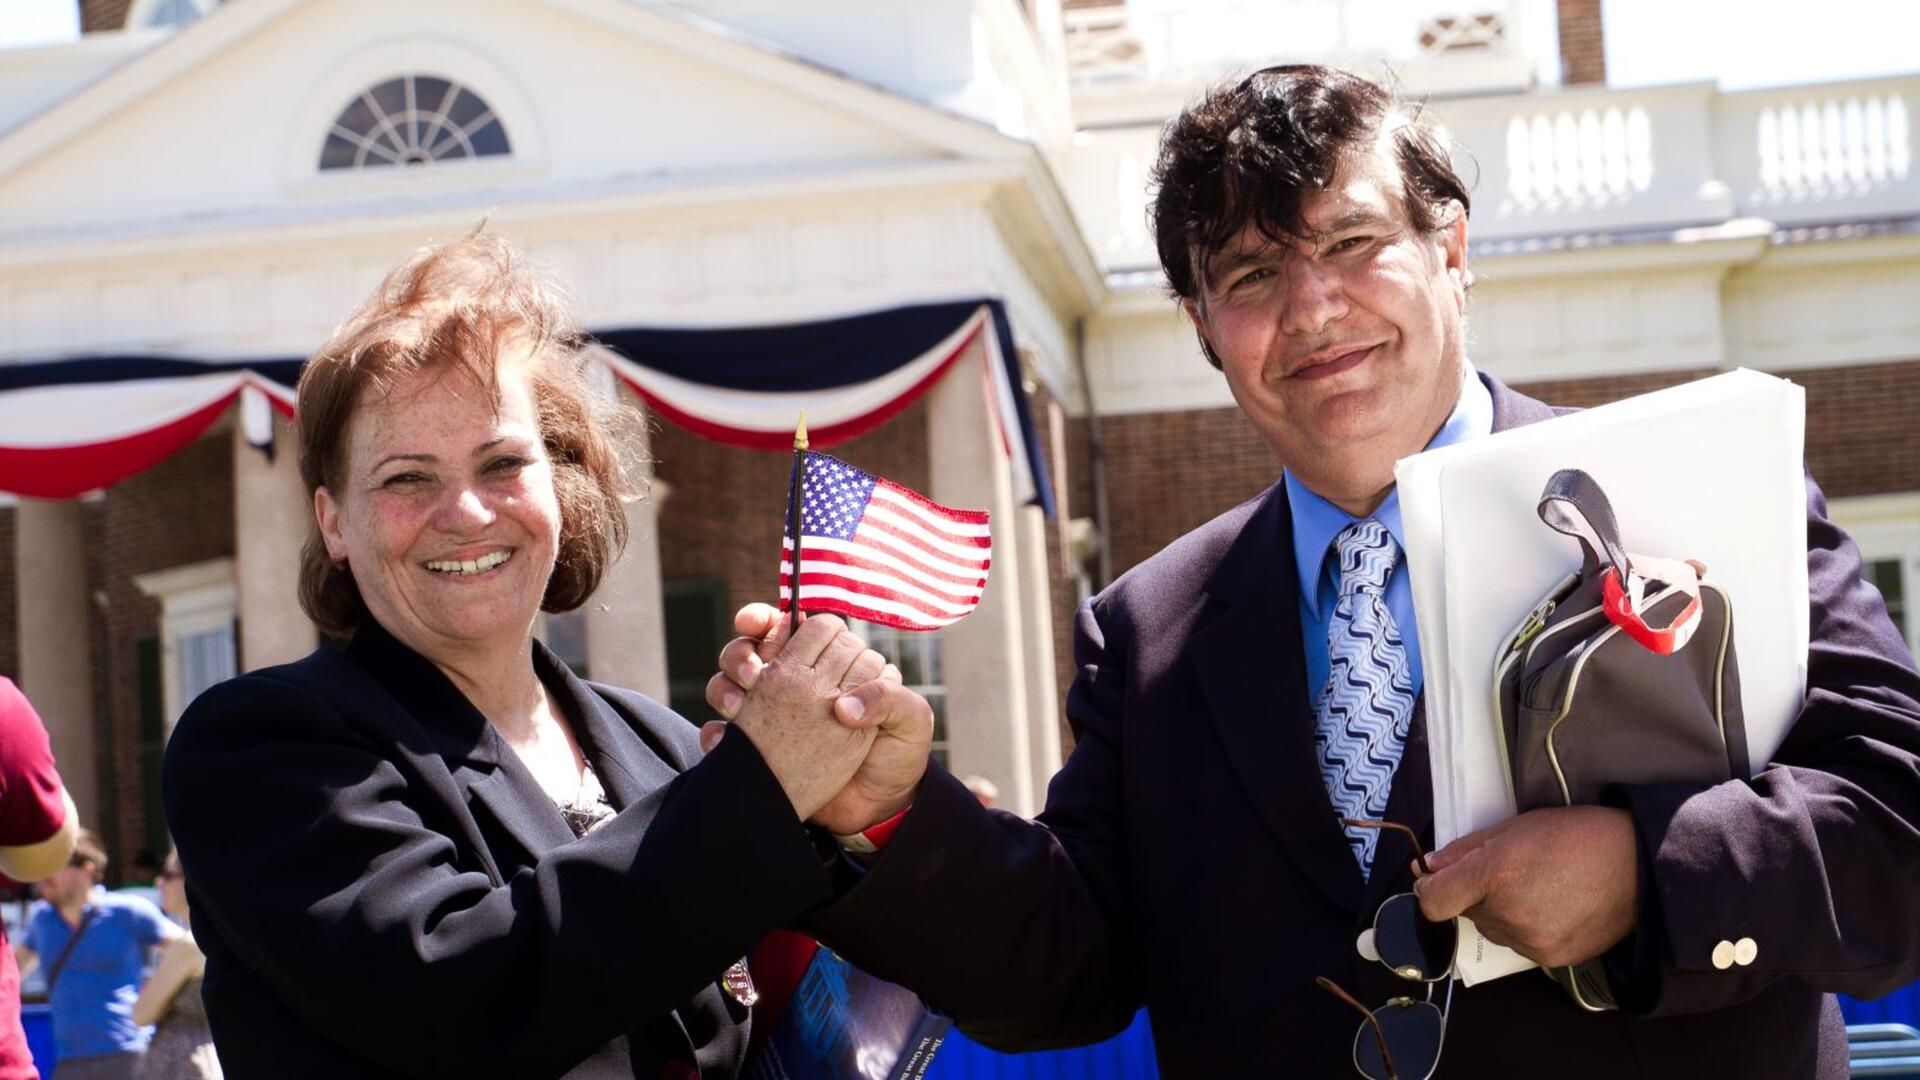 A refugee couple hold a U.S. flag at their naturalization ceremony in Charlottesville, VA